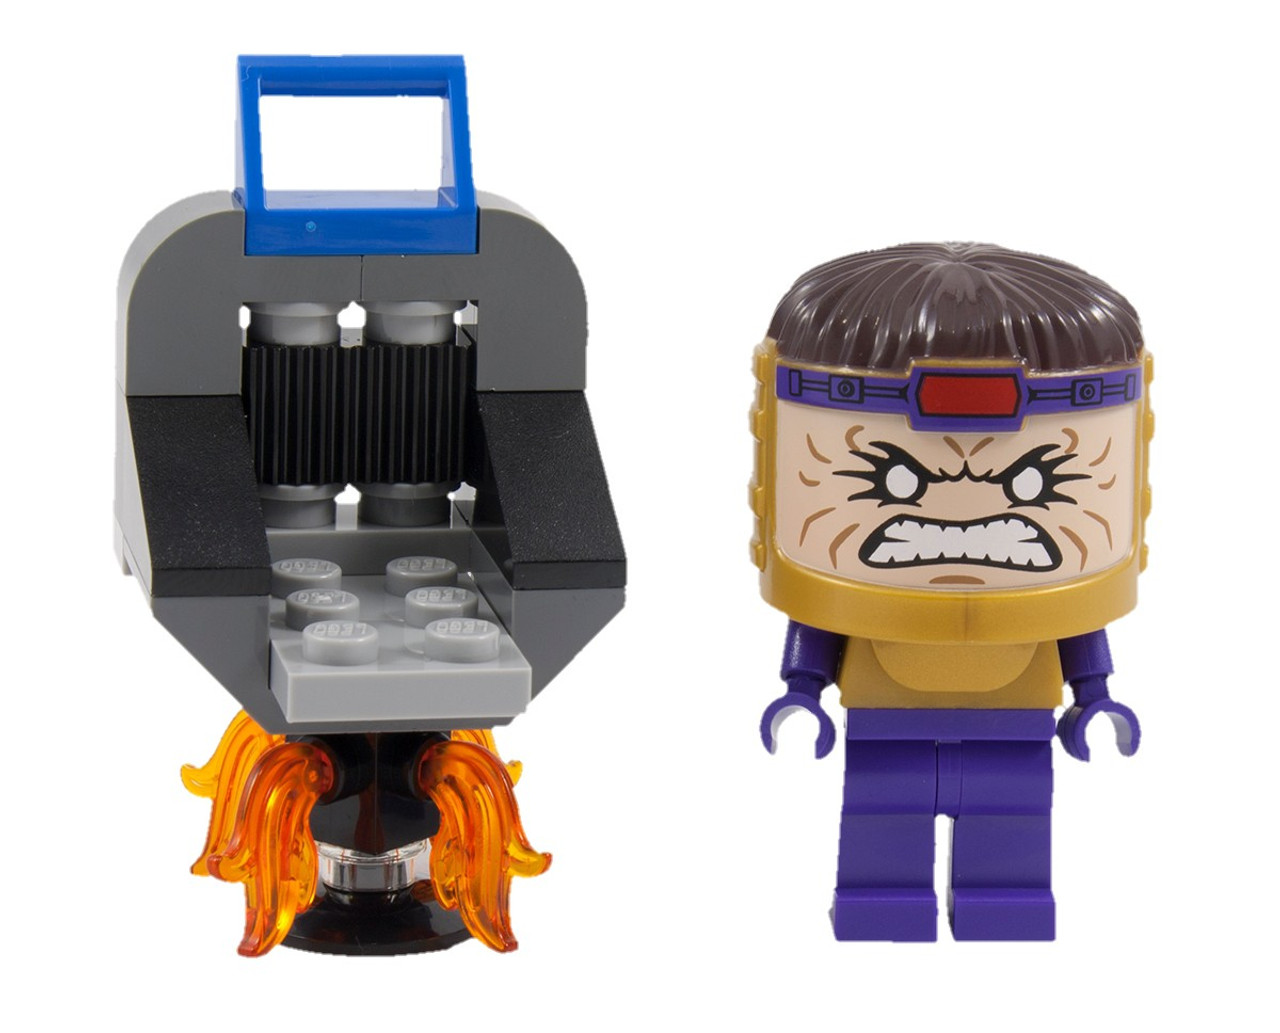 LEGO Marvel Super Heroes MODOK Minifigure [with Hoverchair Loose]